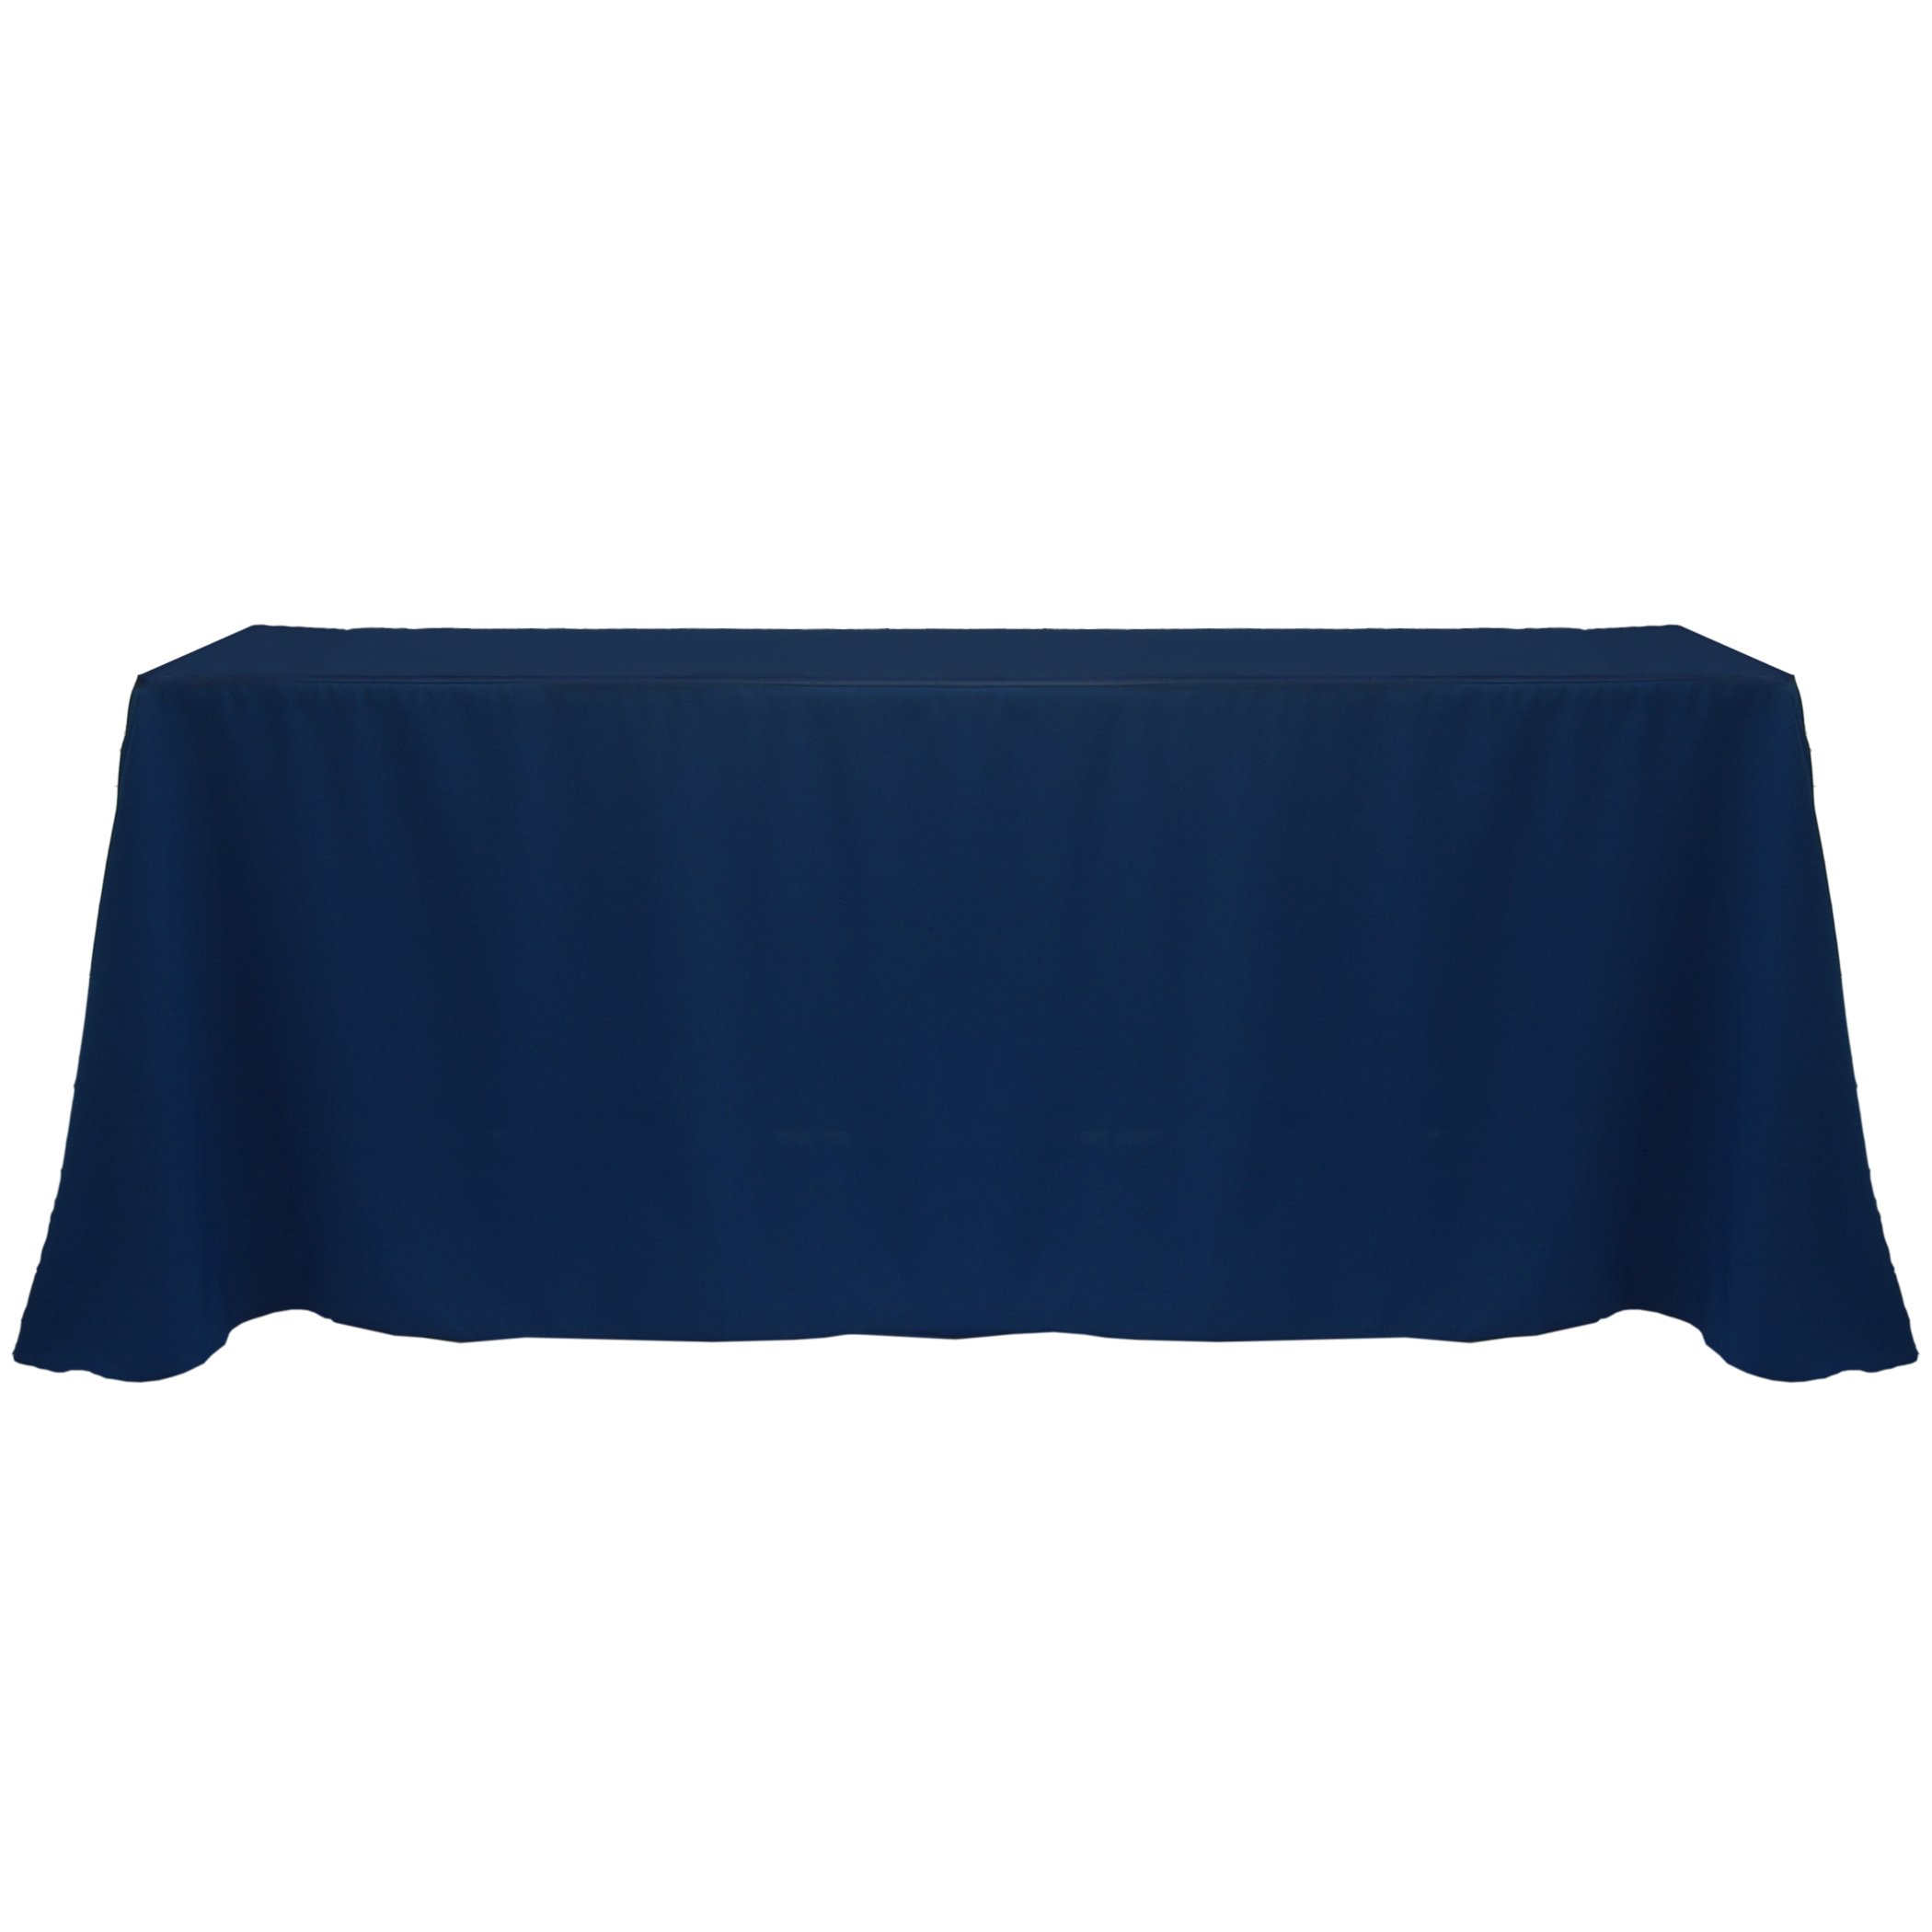 Ultimate Textile -2 Pack- 90 x 132-Inch Rectangular Polyester Linen Tablecloth with Rounded Corners - for Wedding, Restaurant or Banquet use, Navy Blue